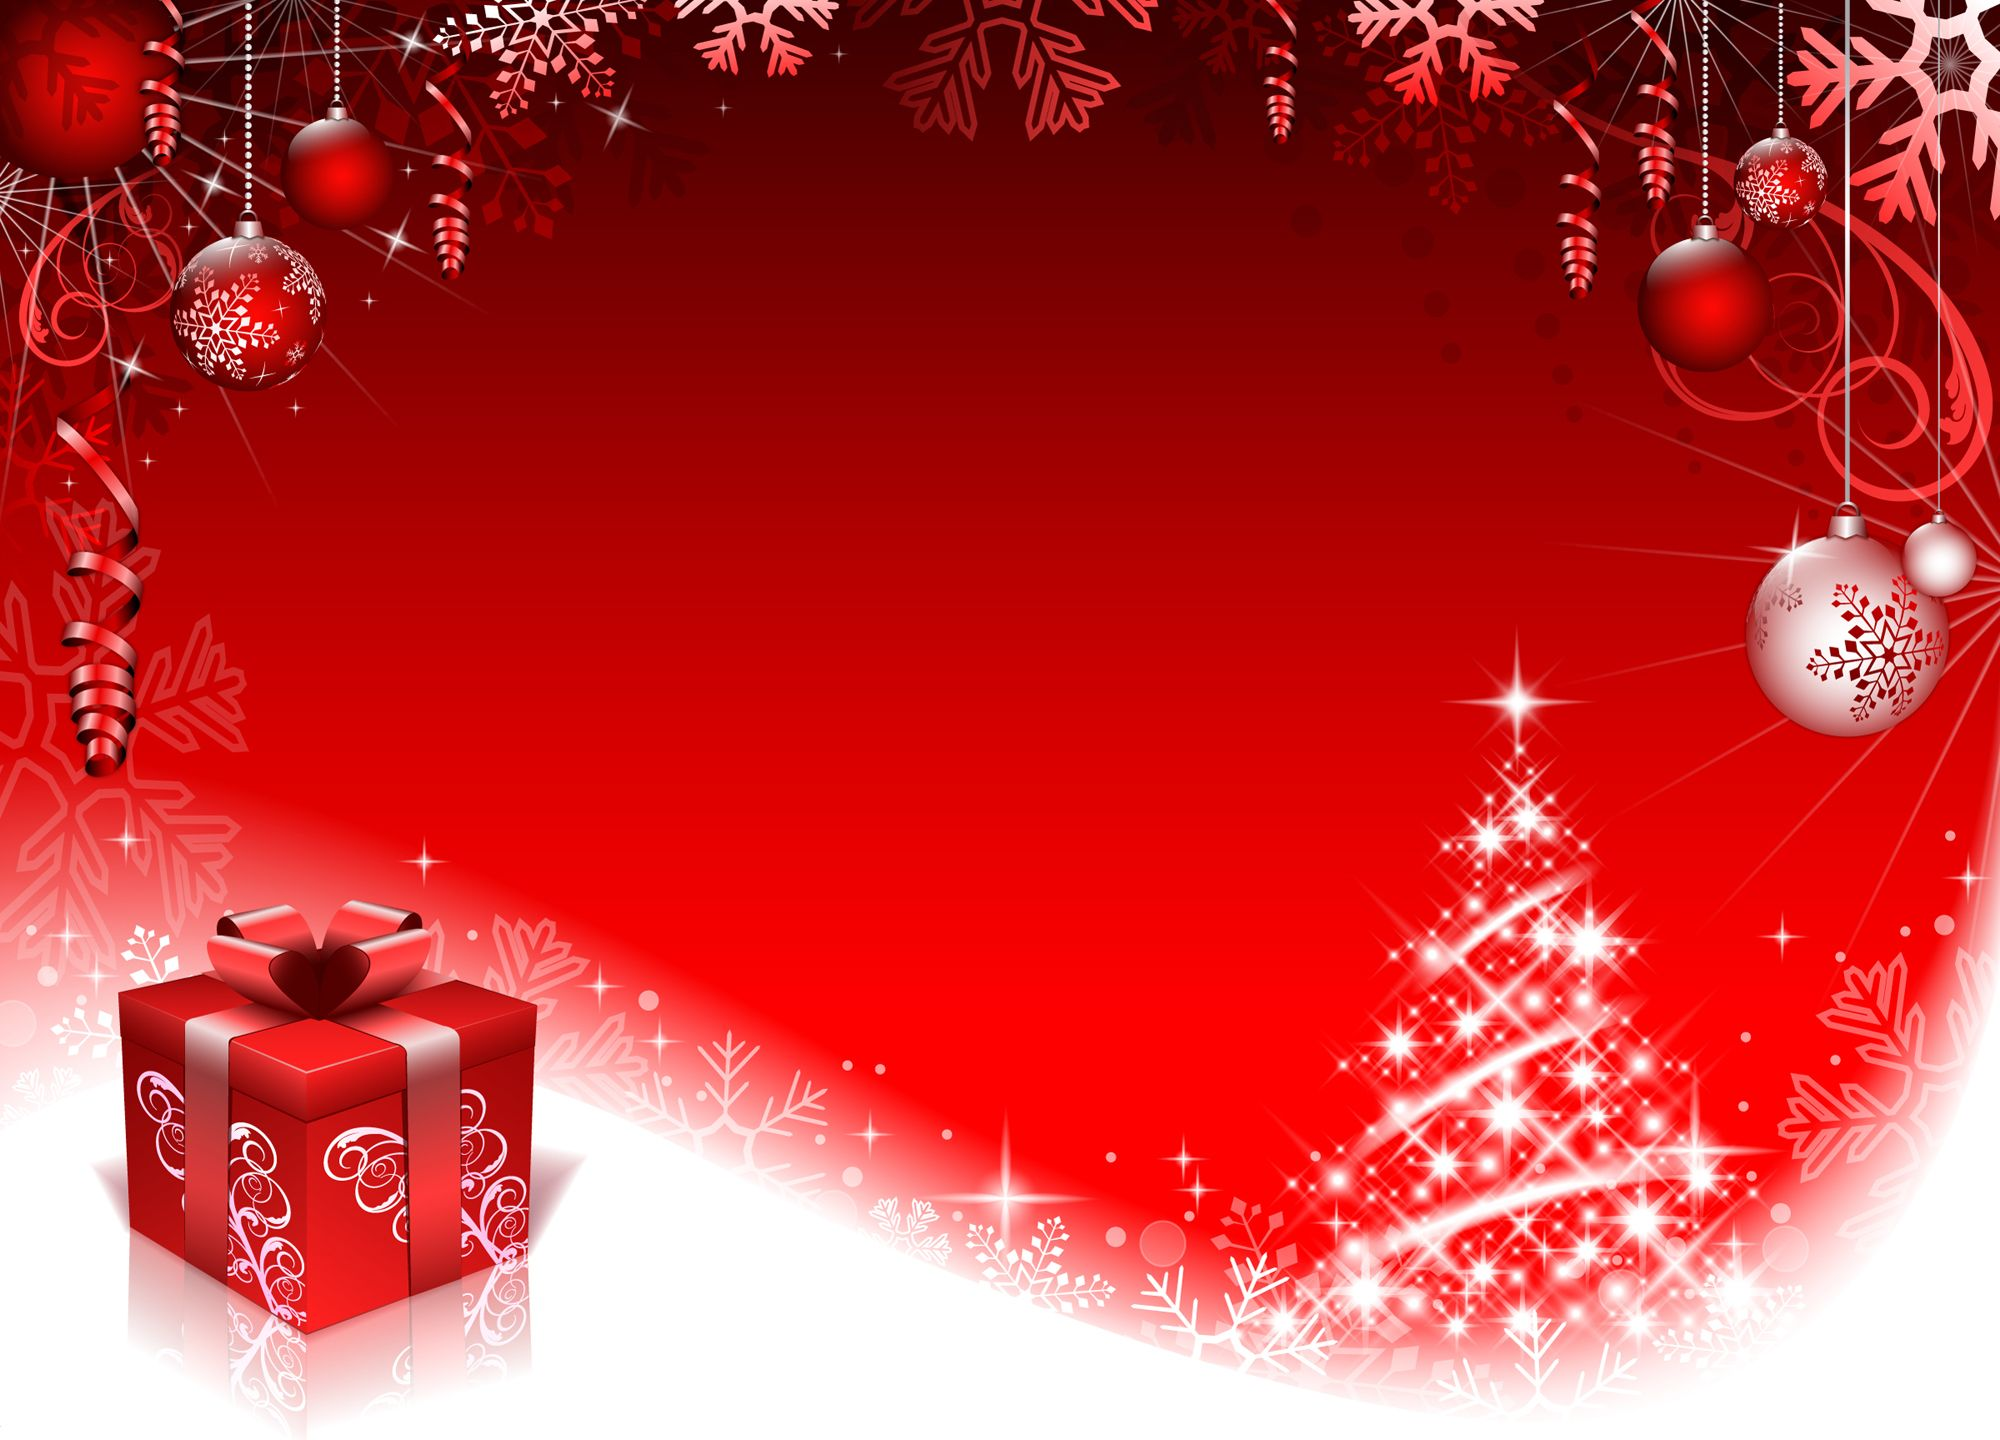 christmas backgrounds | Christmas Backgrounds for Photoshop ...